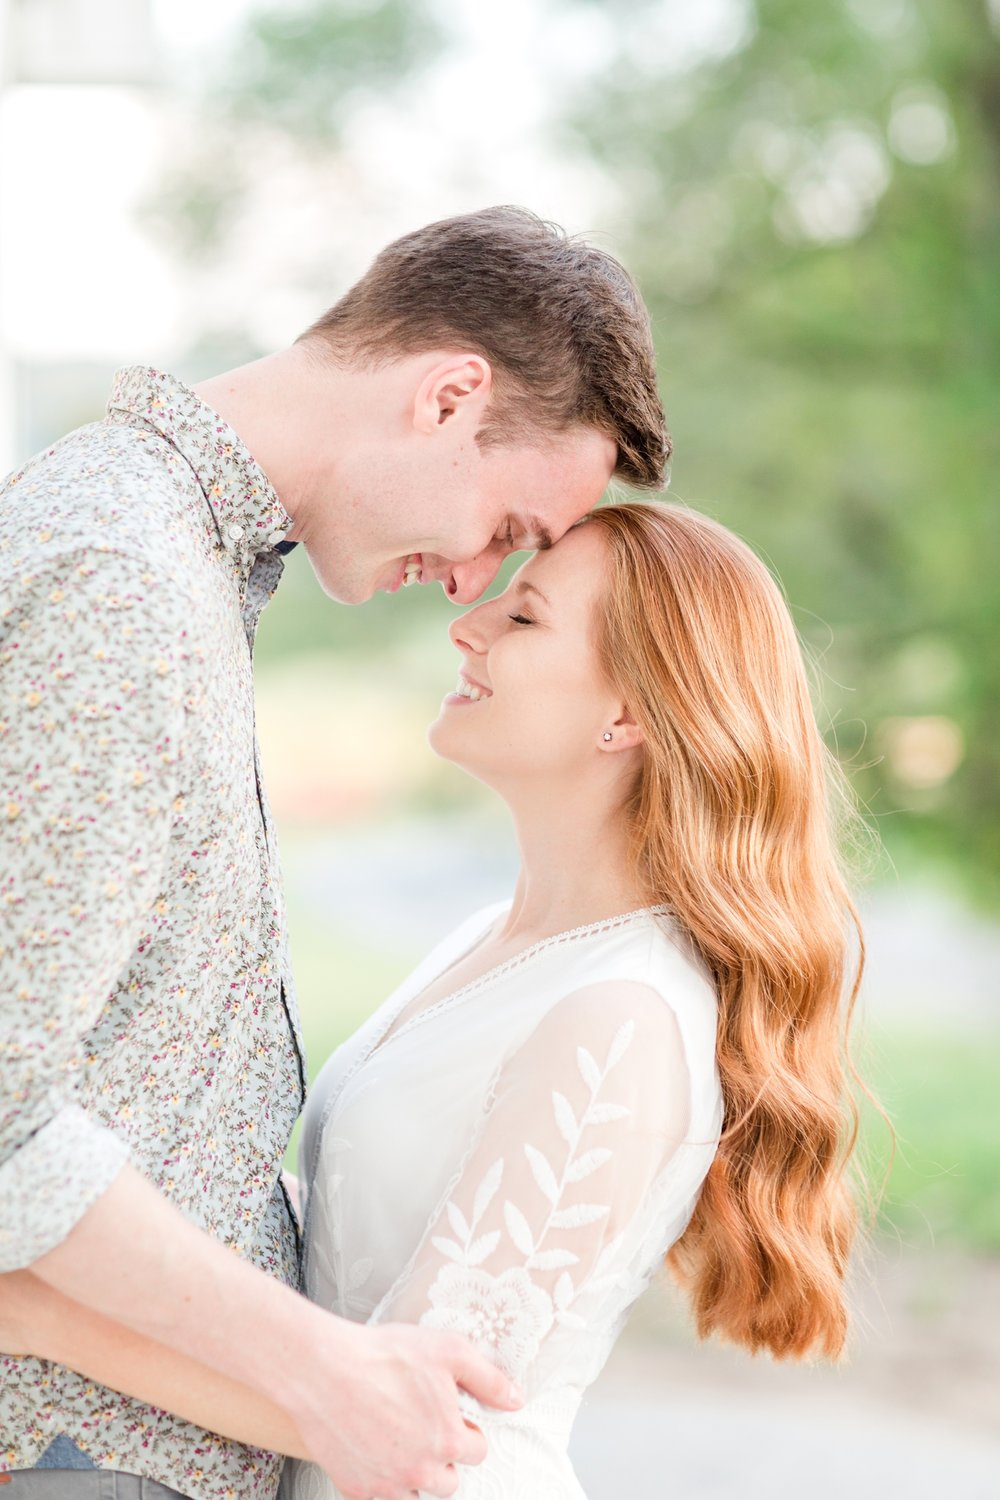 Jessica & Leo Engagement-131_Maryland-Agricultural-Resource-Center-engagement-photographer-anna-grace-photography-photo.jpg